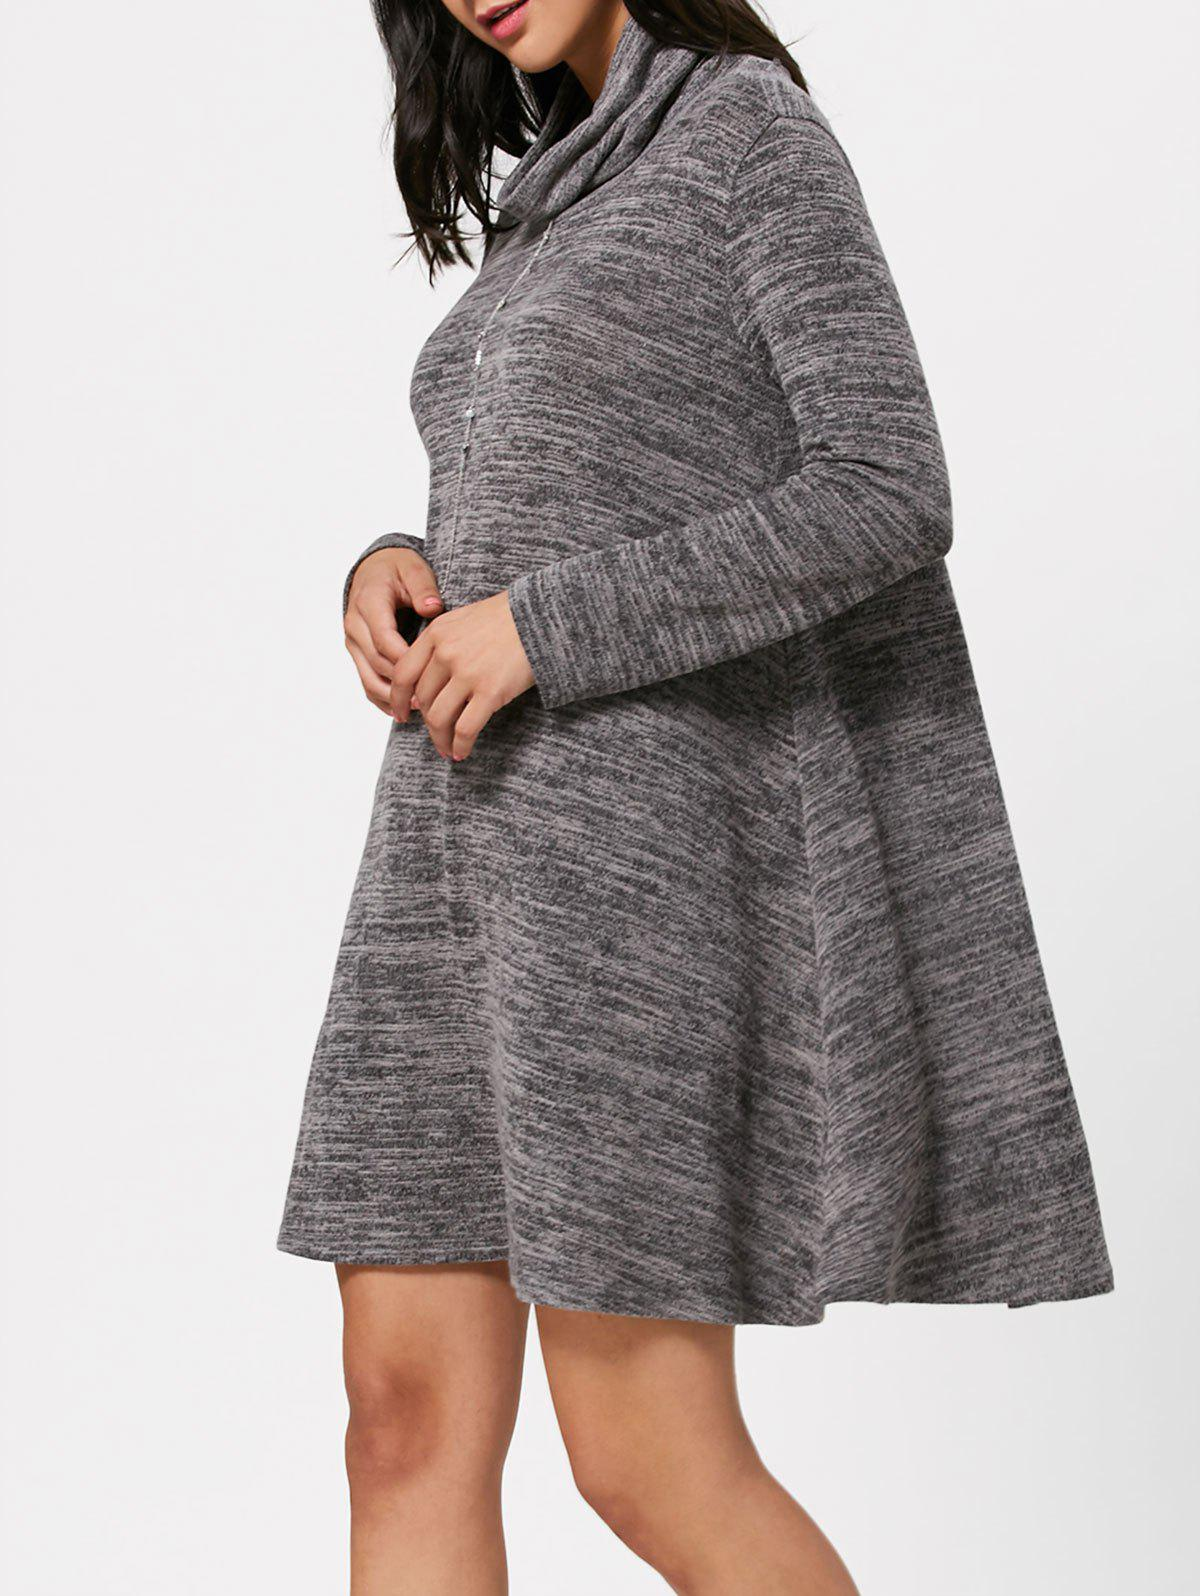 High Neck Long Sleeve Knit Tunic Dress - GRAY 2XL